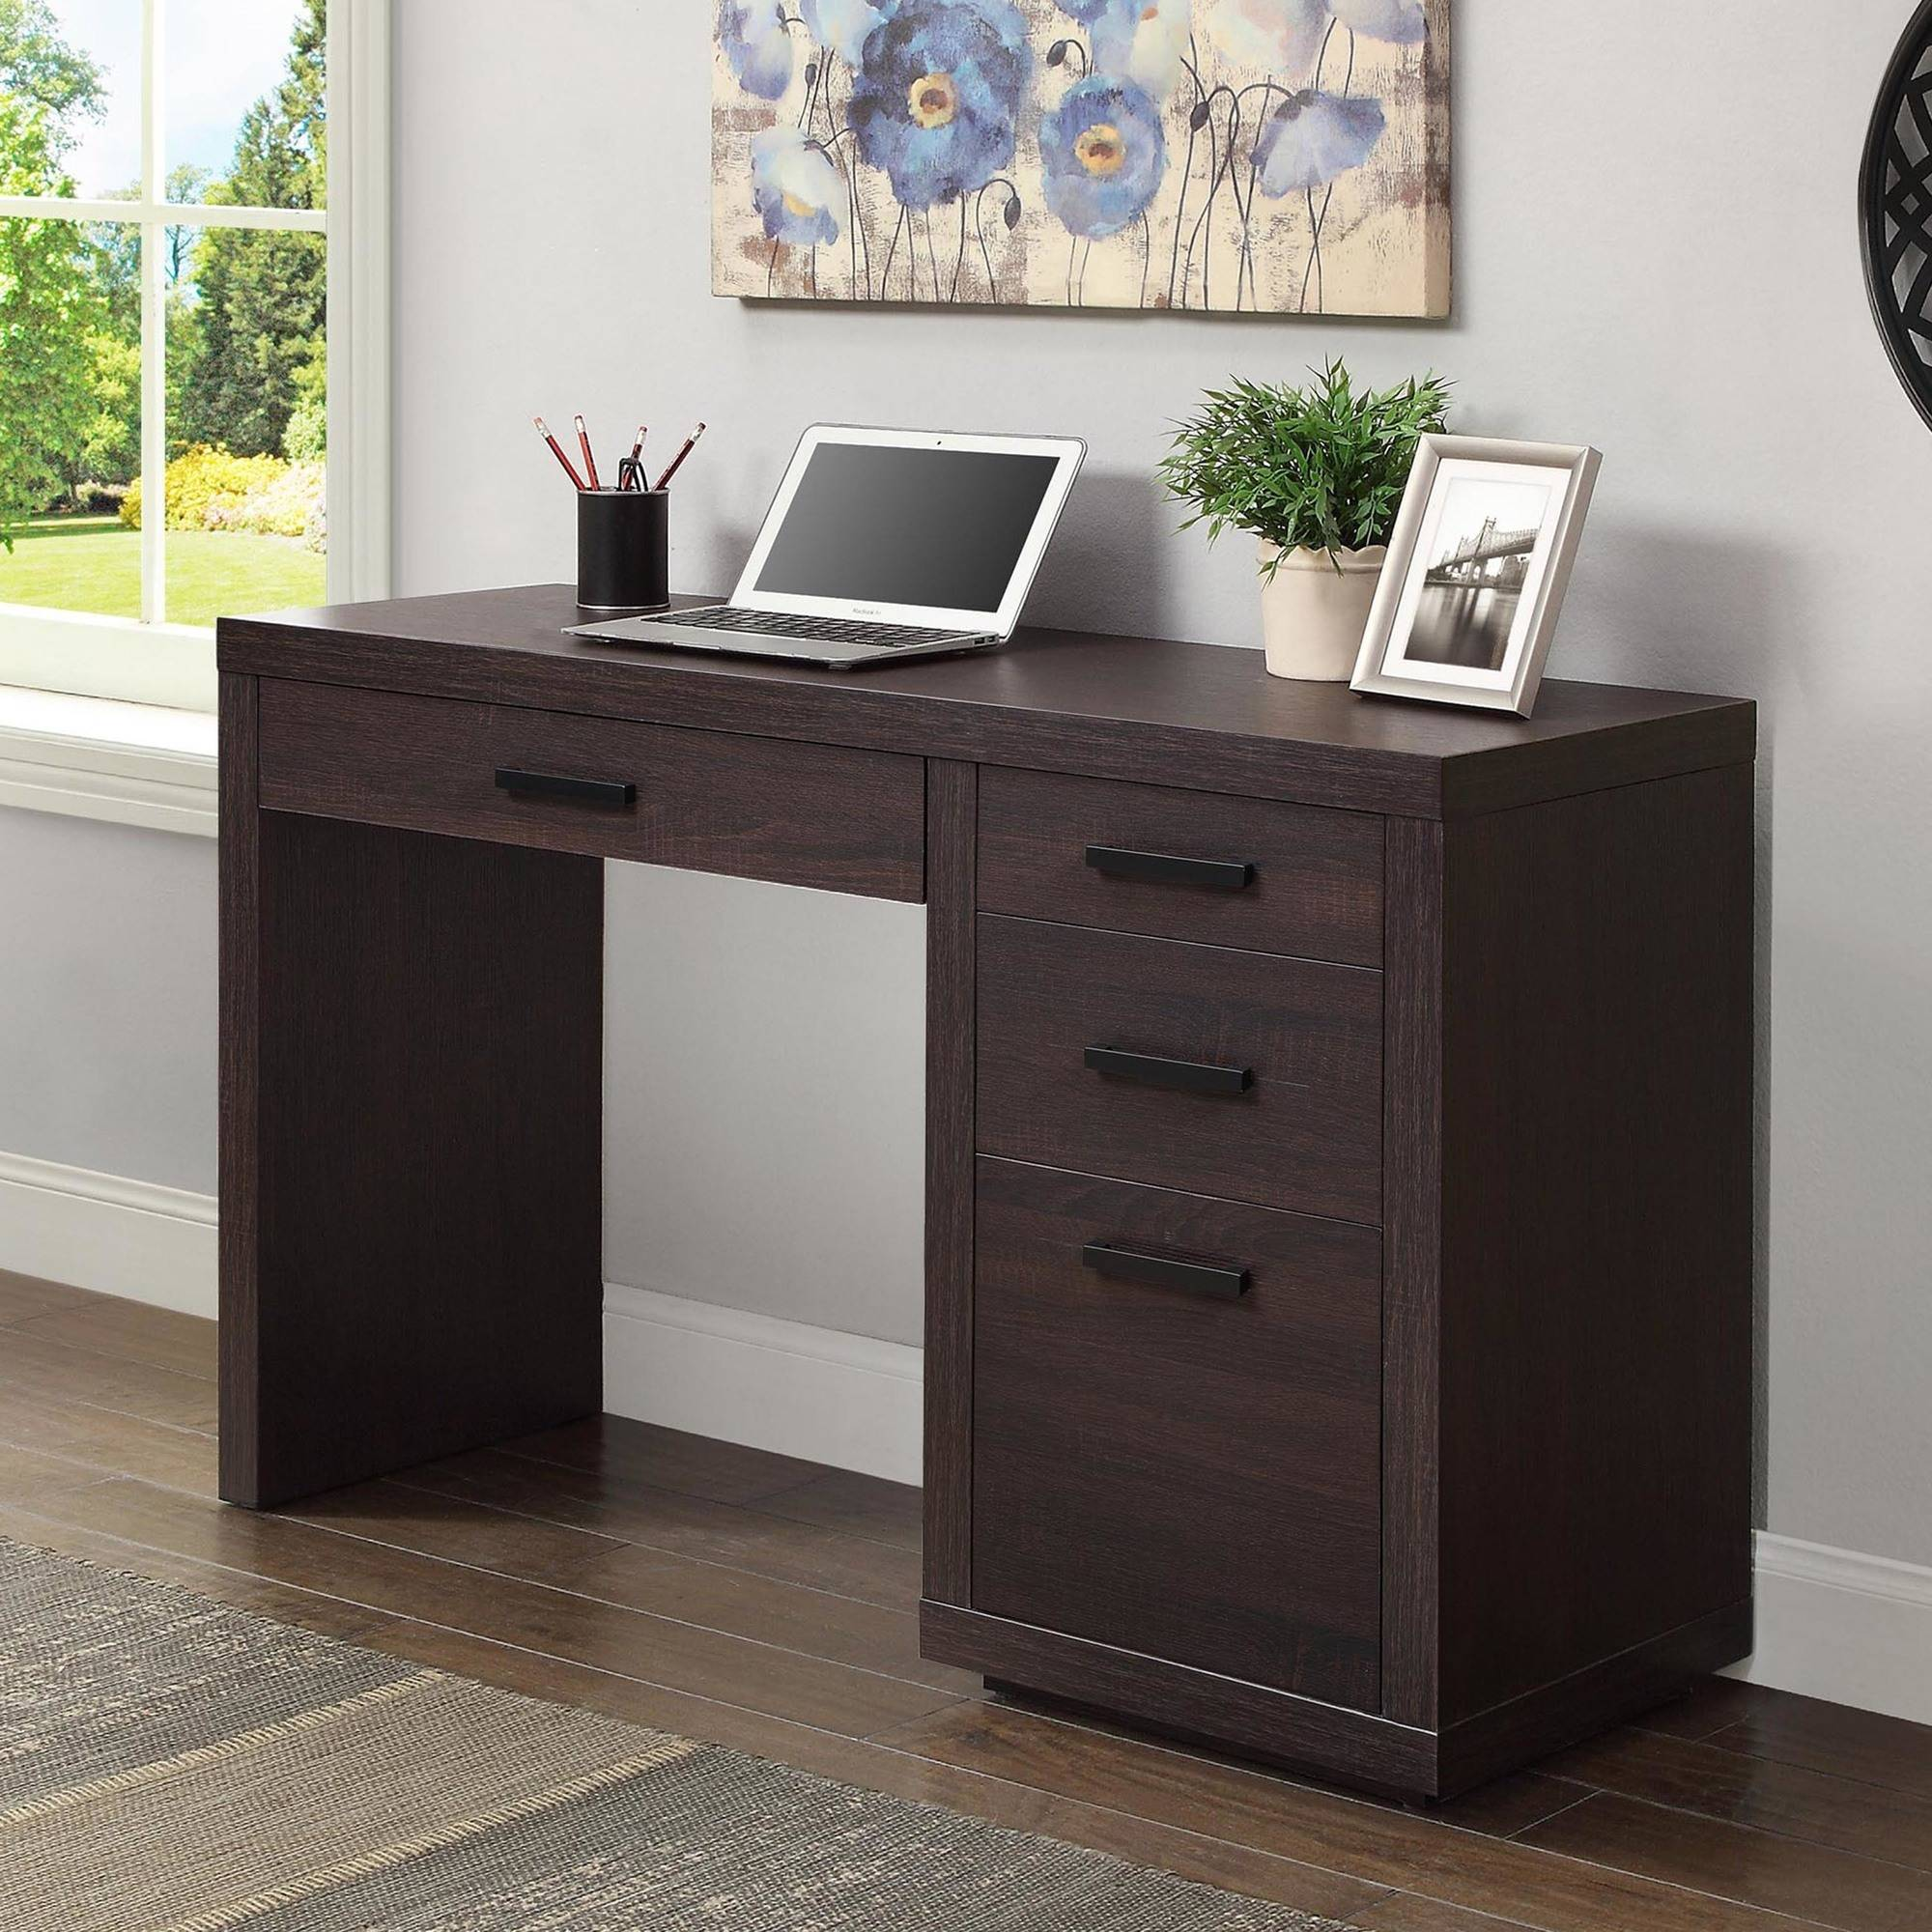 Writing desk walmart